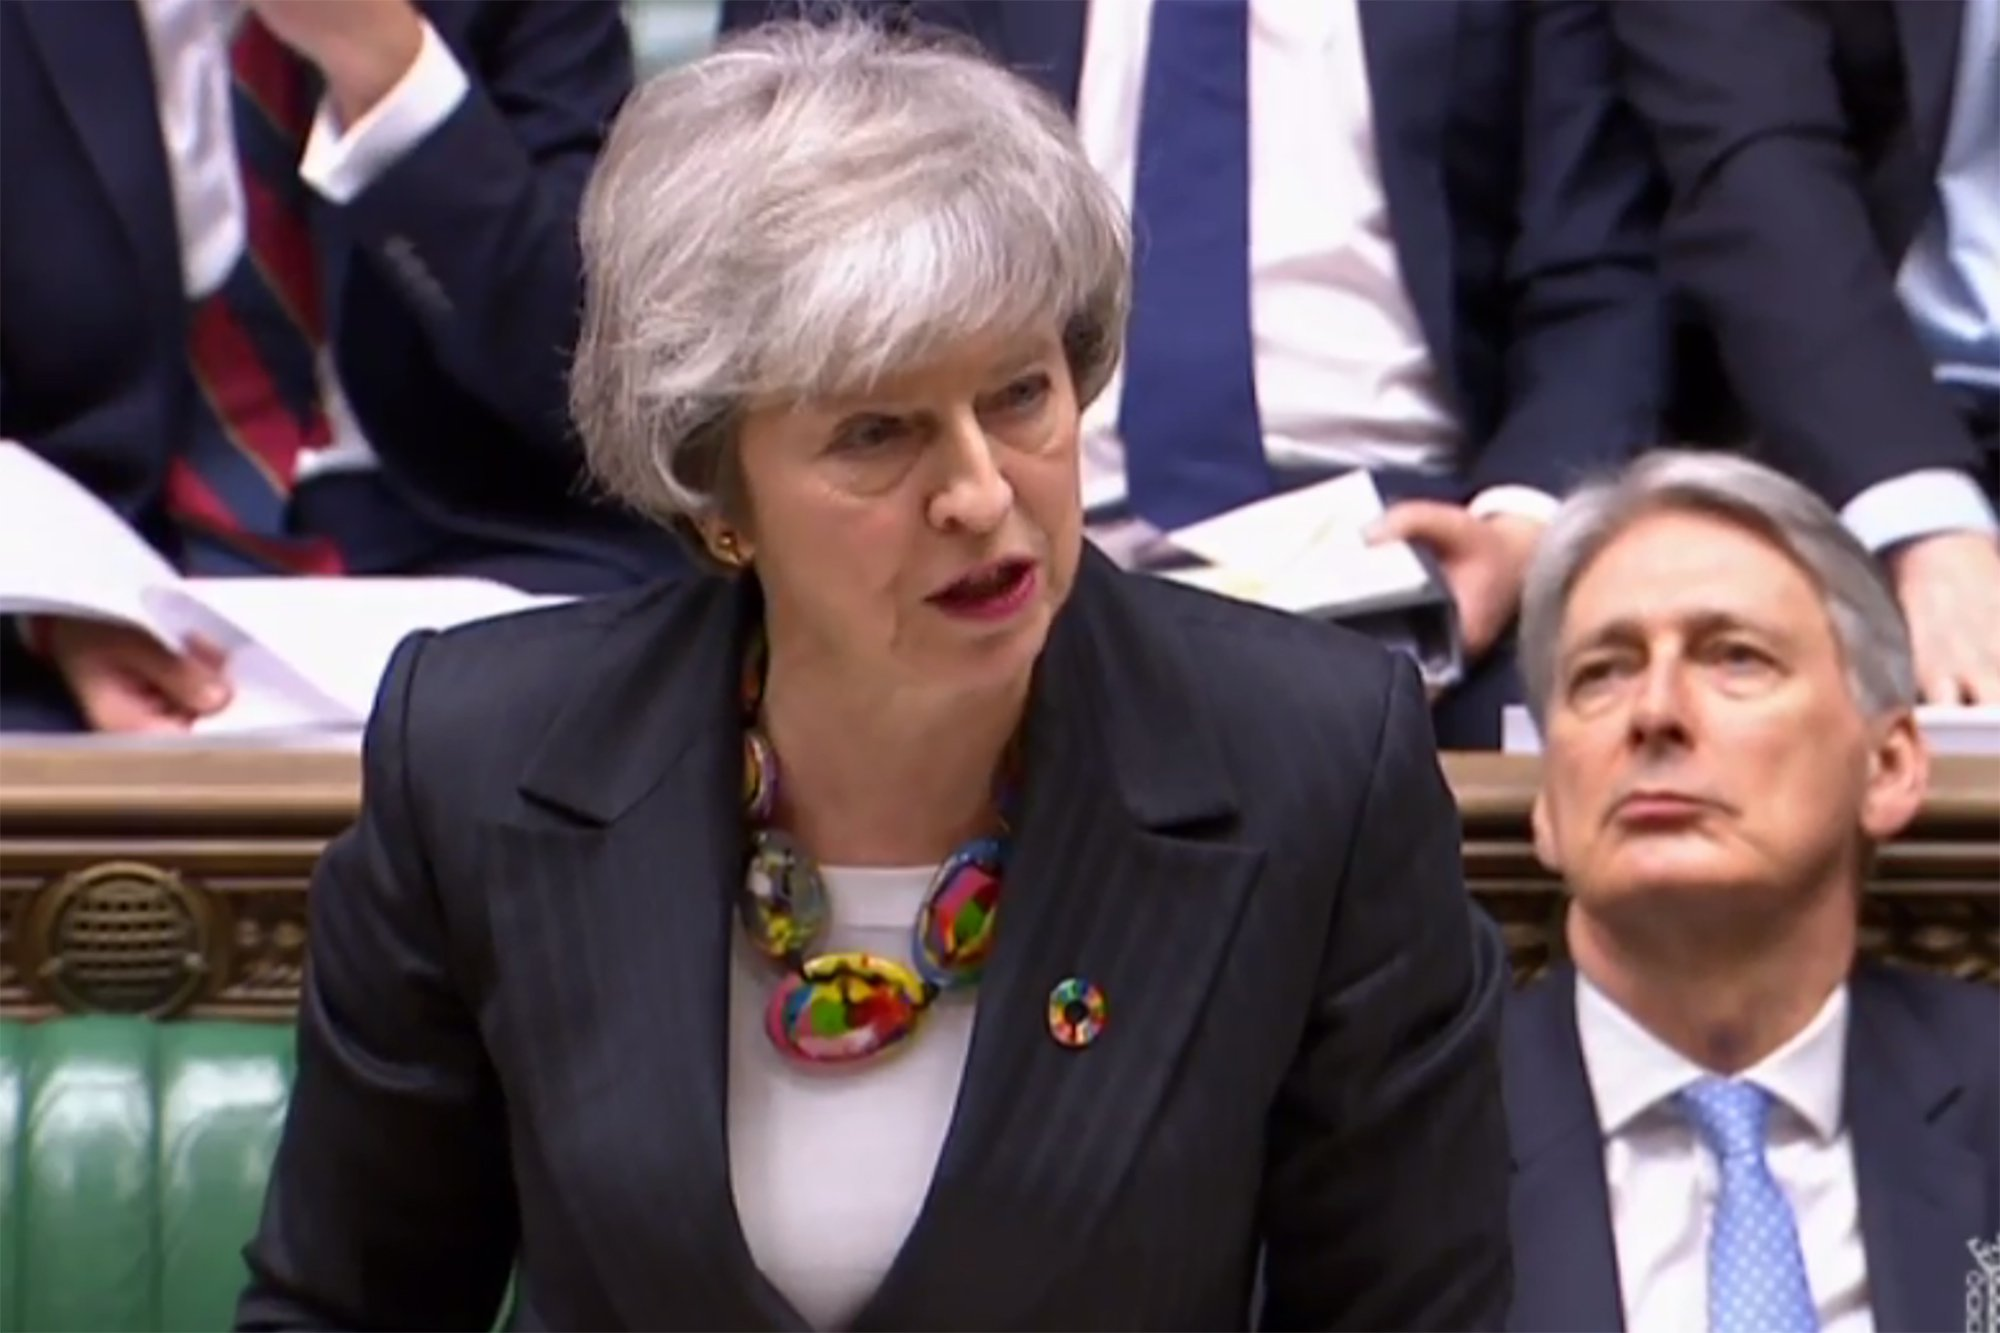 """A video grab from footage broadcast by the UK Parliament's Parliamentary Recording Unit (PRU) shows Britain's Prime Minister Theresa May making a statement on Brexit in the House of Commons in London on February 12, 2019. - May updated parliament on her latest meetings in Brussels and Dublin aimed at securing a divorce agreement with the EU, with Britain due to leave the bloc on March 29. (Photo by HO / various sources / AFP) / RESTRICTED TO EDITORIAL USE - MANDATORY CREDIT """" AFP PHOTO / PRU """" - NO USE FOR ENTERTAINMENT, SATIRICAL, MARKETING OR ADVERTISING CAMPAIGNSHO/AFP/Getty Images"""